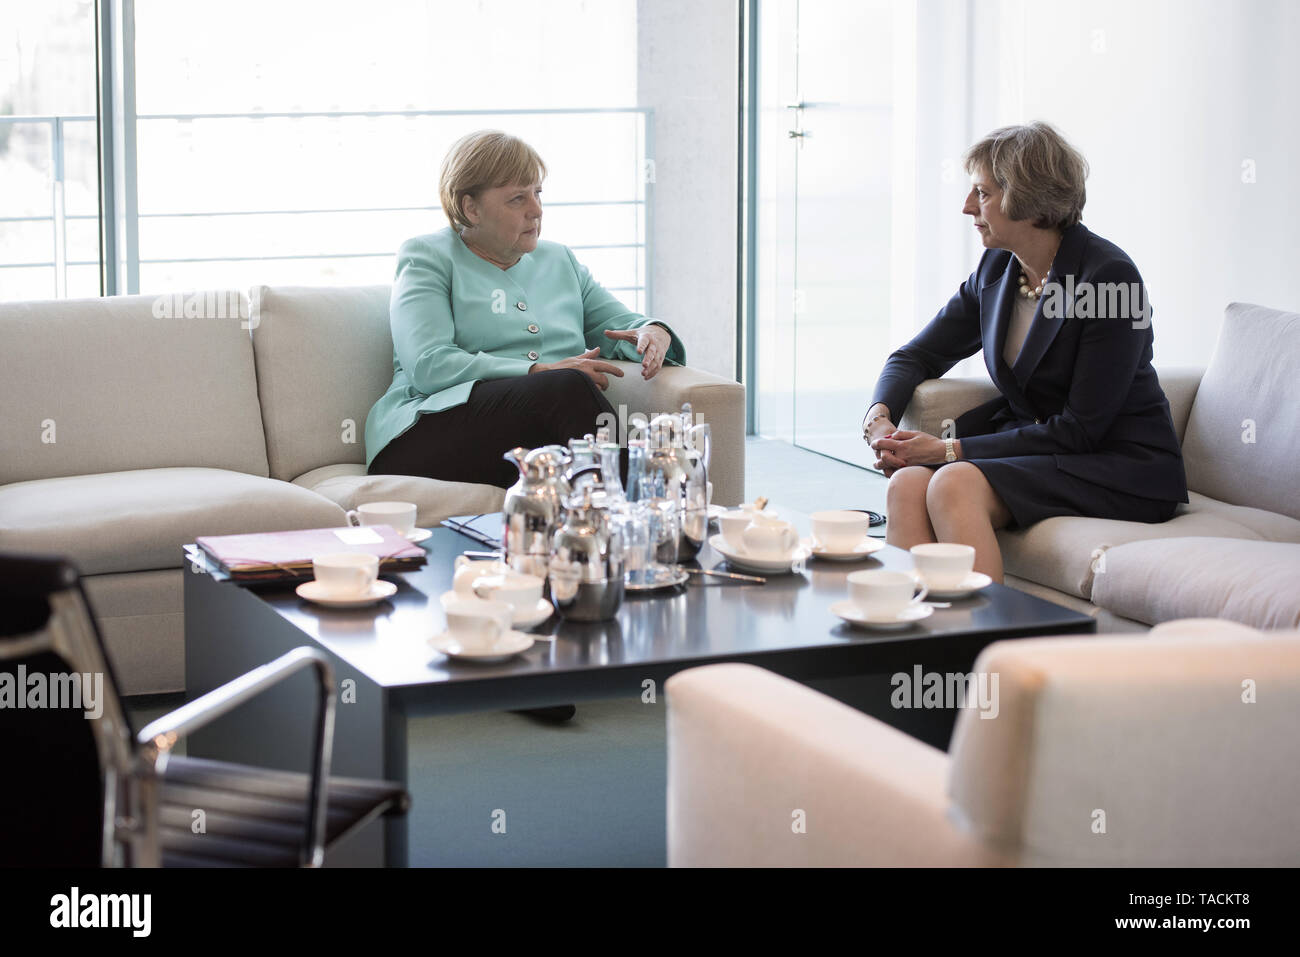 Berlin, Germany. 20th July, 2016. HANDOUT - A handout picture made available by the German Federal Government (Bundesregierung) shows German Chancellor Angela Merkel (L) and new British Prime Minister Theresa May at the beginning of their meeting held in the Federal Chancellery in Berlin, Germany, 20 July 2016. Credit: Guido Bergmann/Bundesregierung/dpa (ATTENTION EDITORS: EDITORIAL USE ONLY IN CONNECTION WITH CURRENT REPORTING/MANDATORY CREDITS: 'Guido Bergmann/Bundesregierung/dpa') | usage worldwide/dpa/Alamy Live News - Stock Image